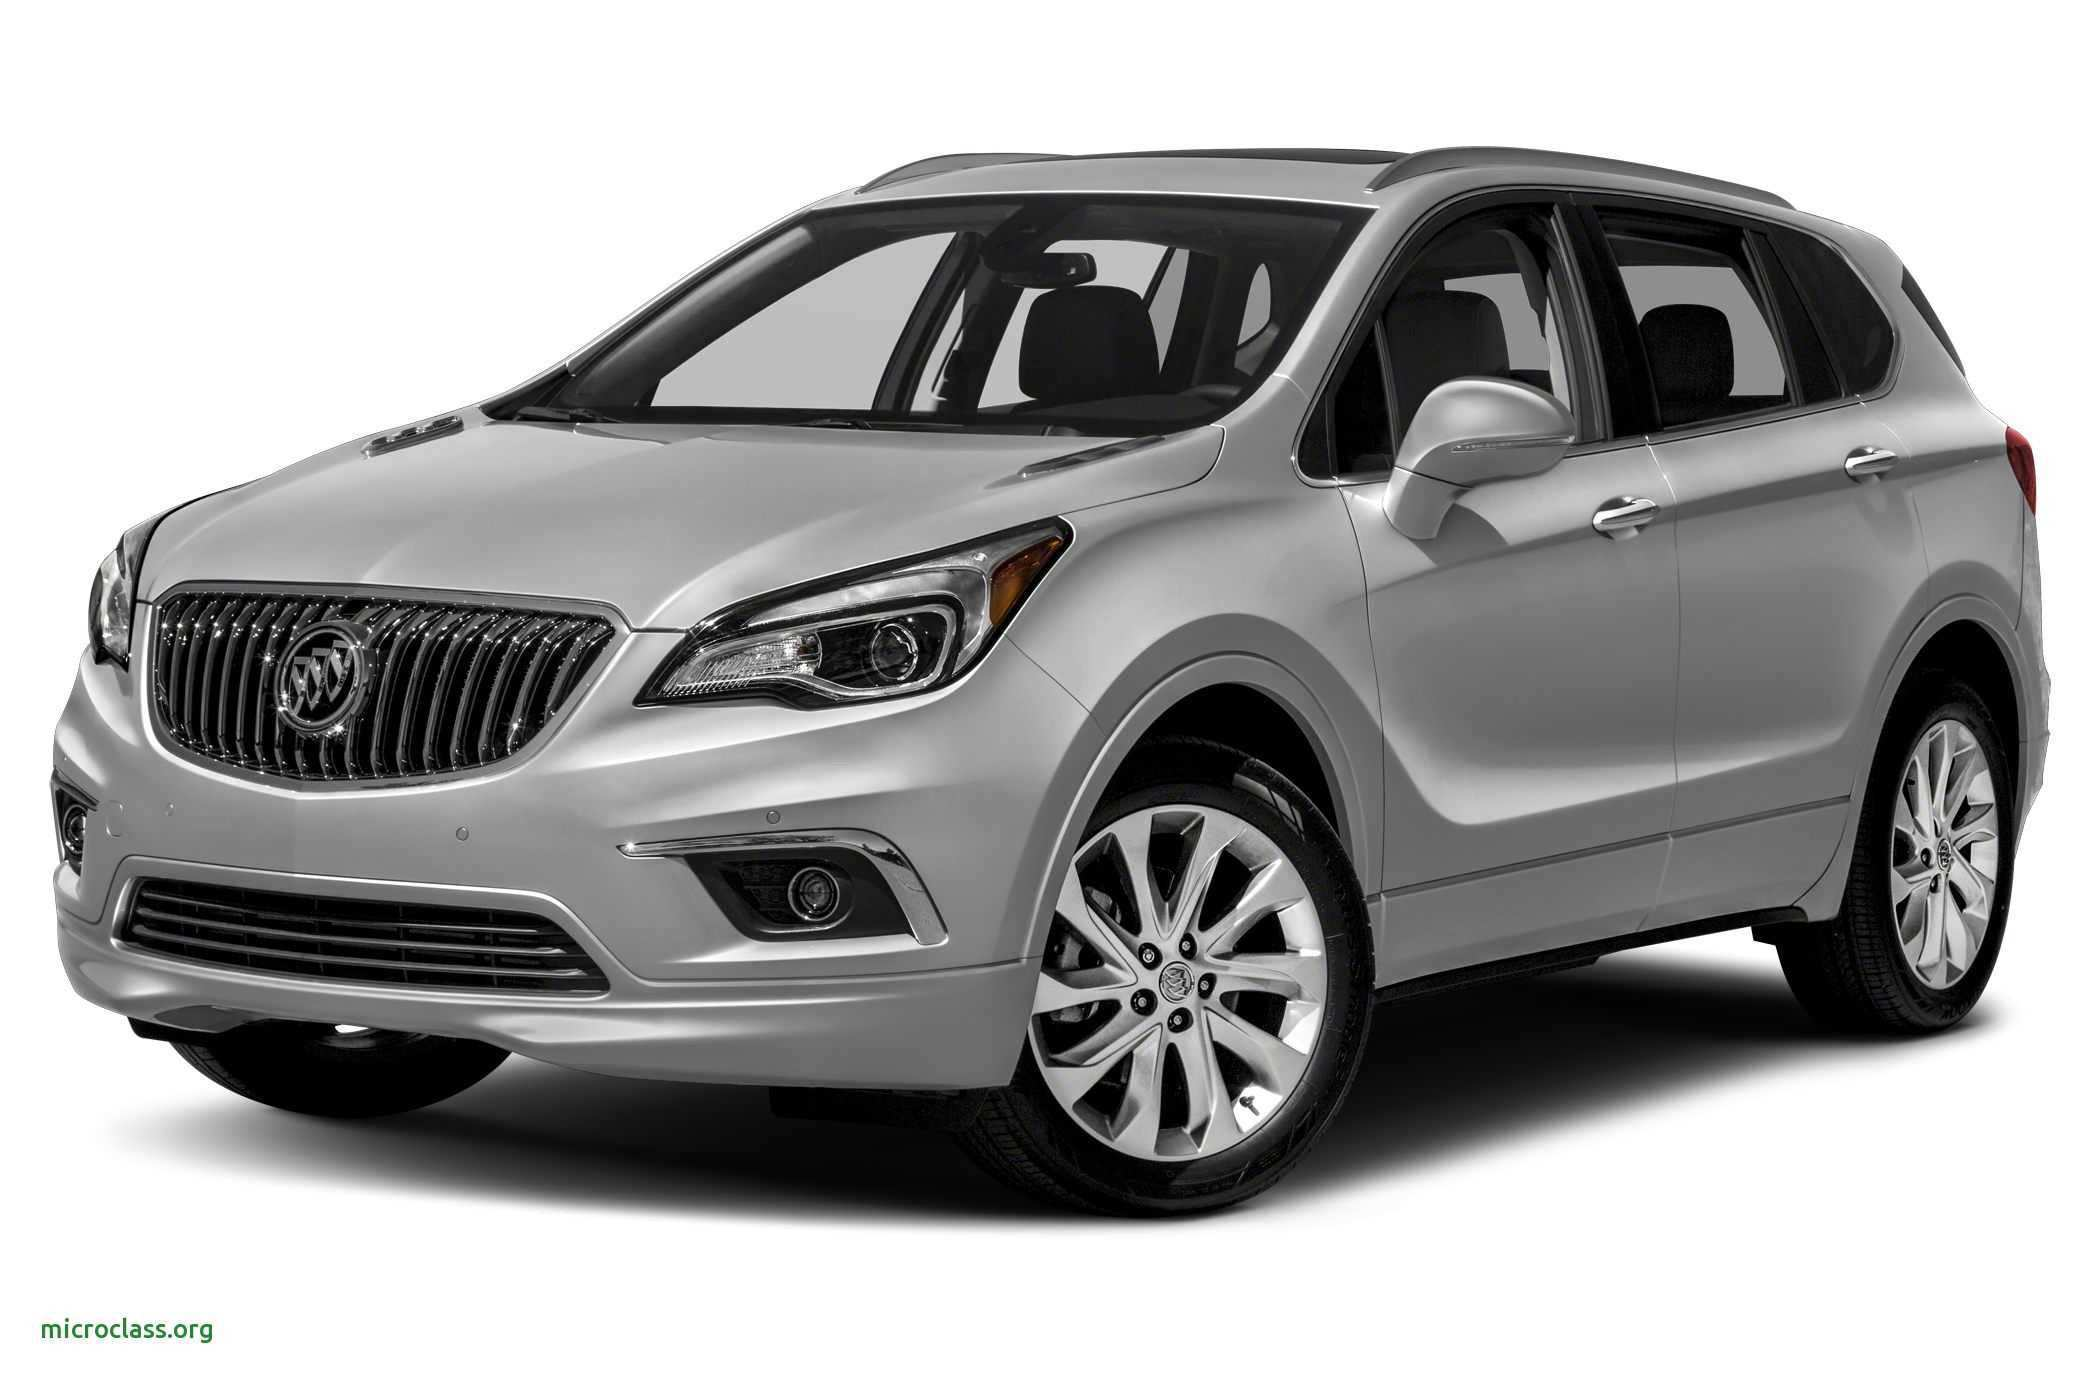 80 Best Review 2020 Buick Anthem Price for 2020 Buick Anthem